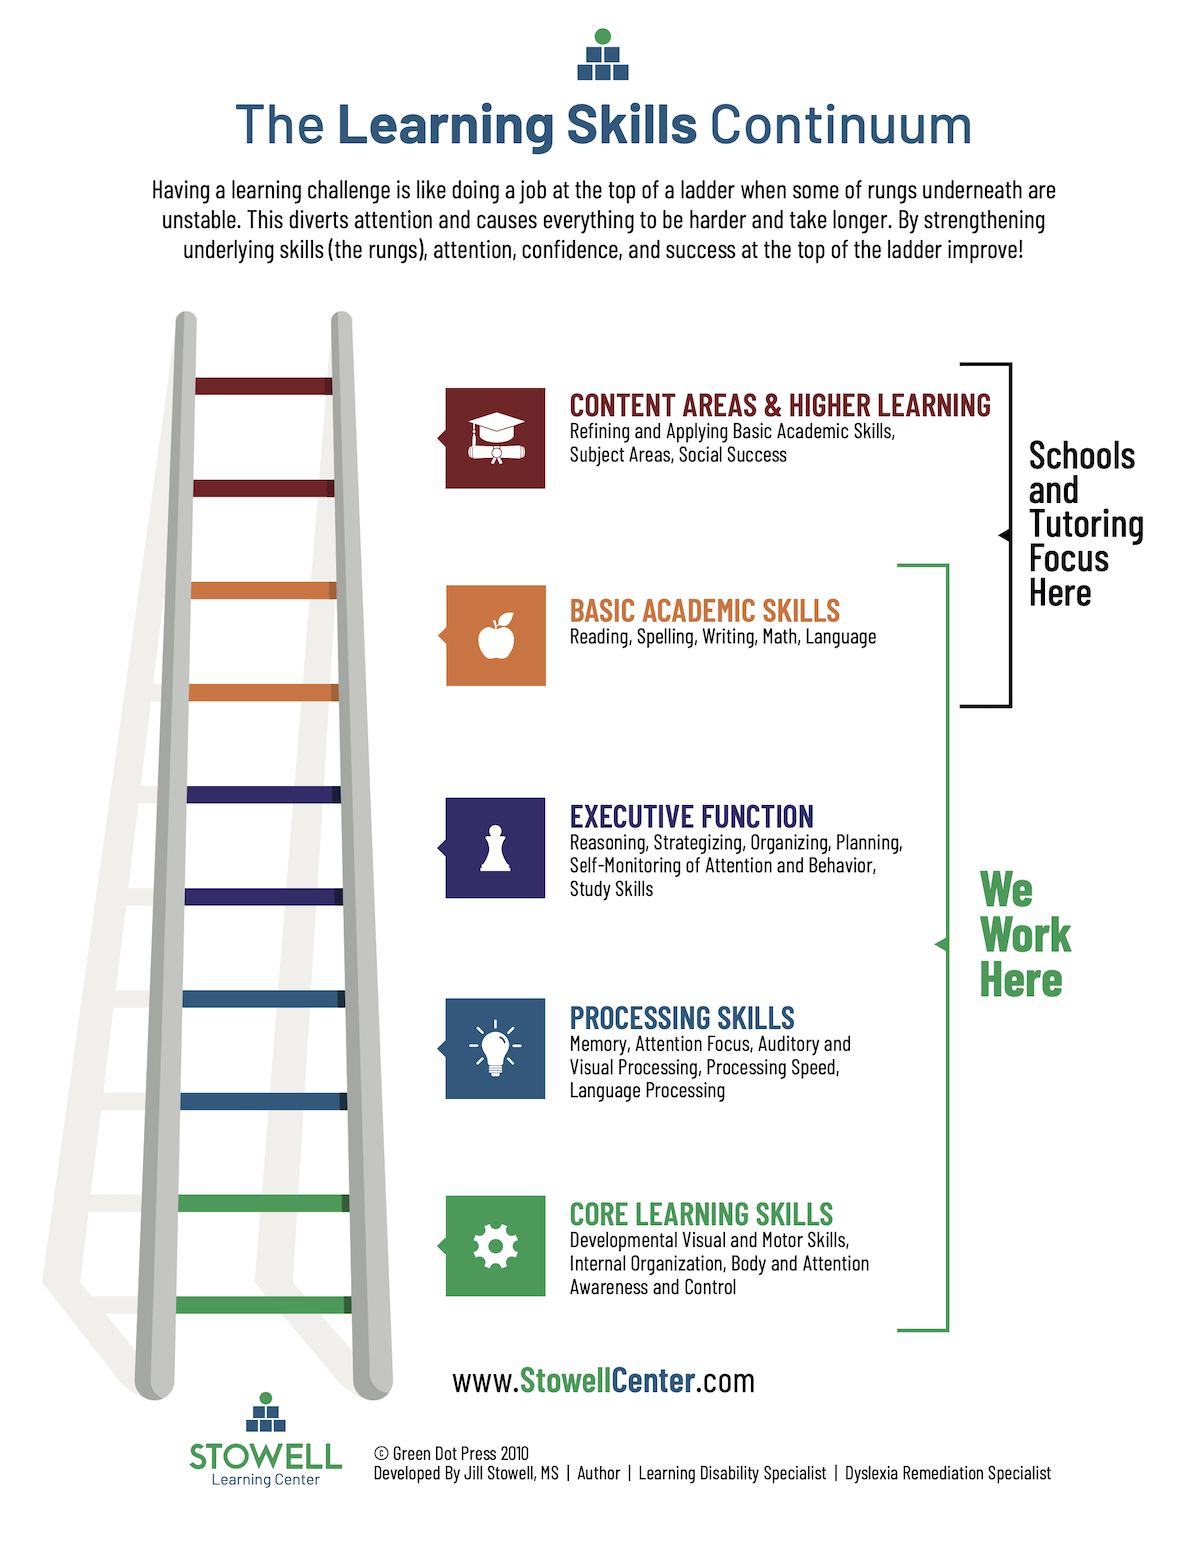 The Stowell Center - Learning Continuum Ladder